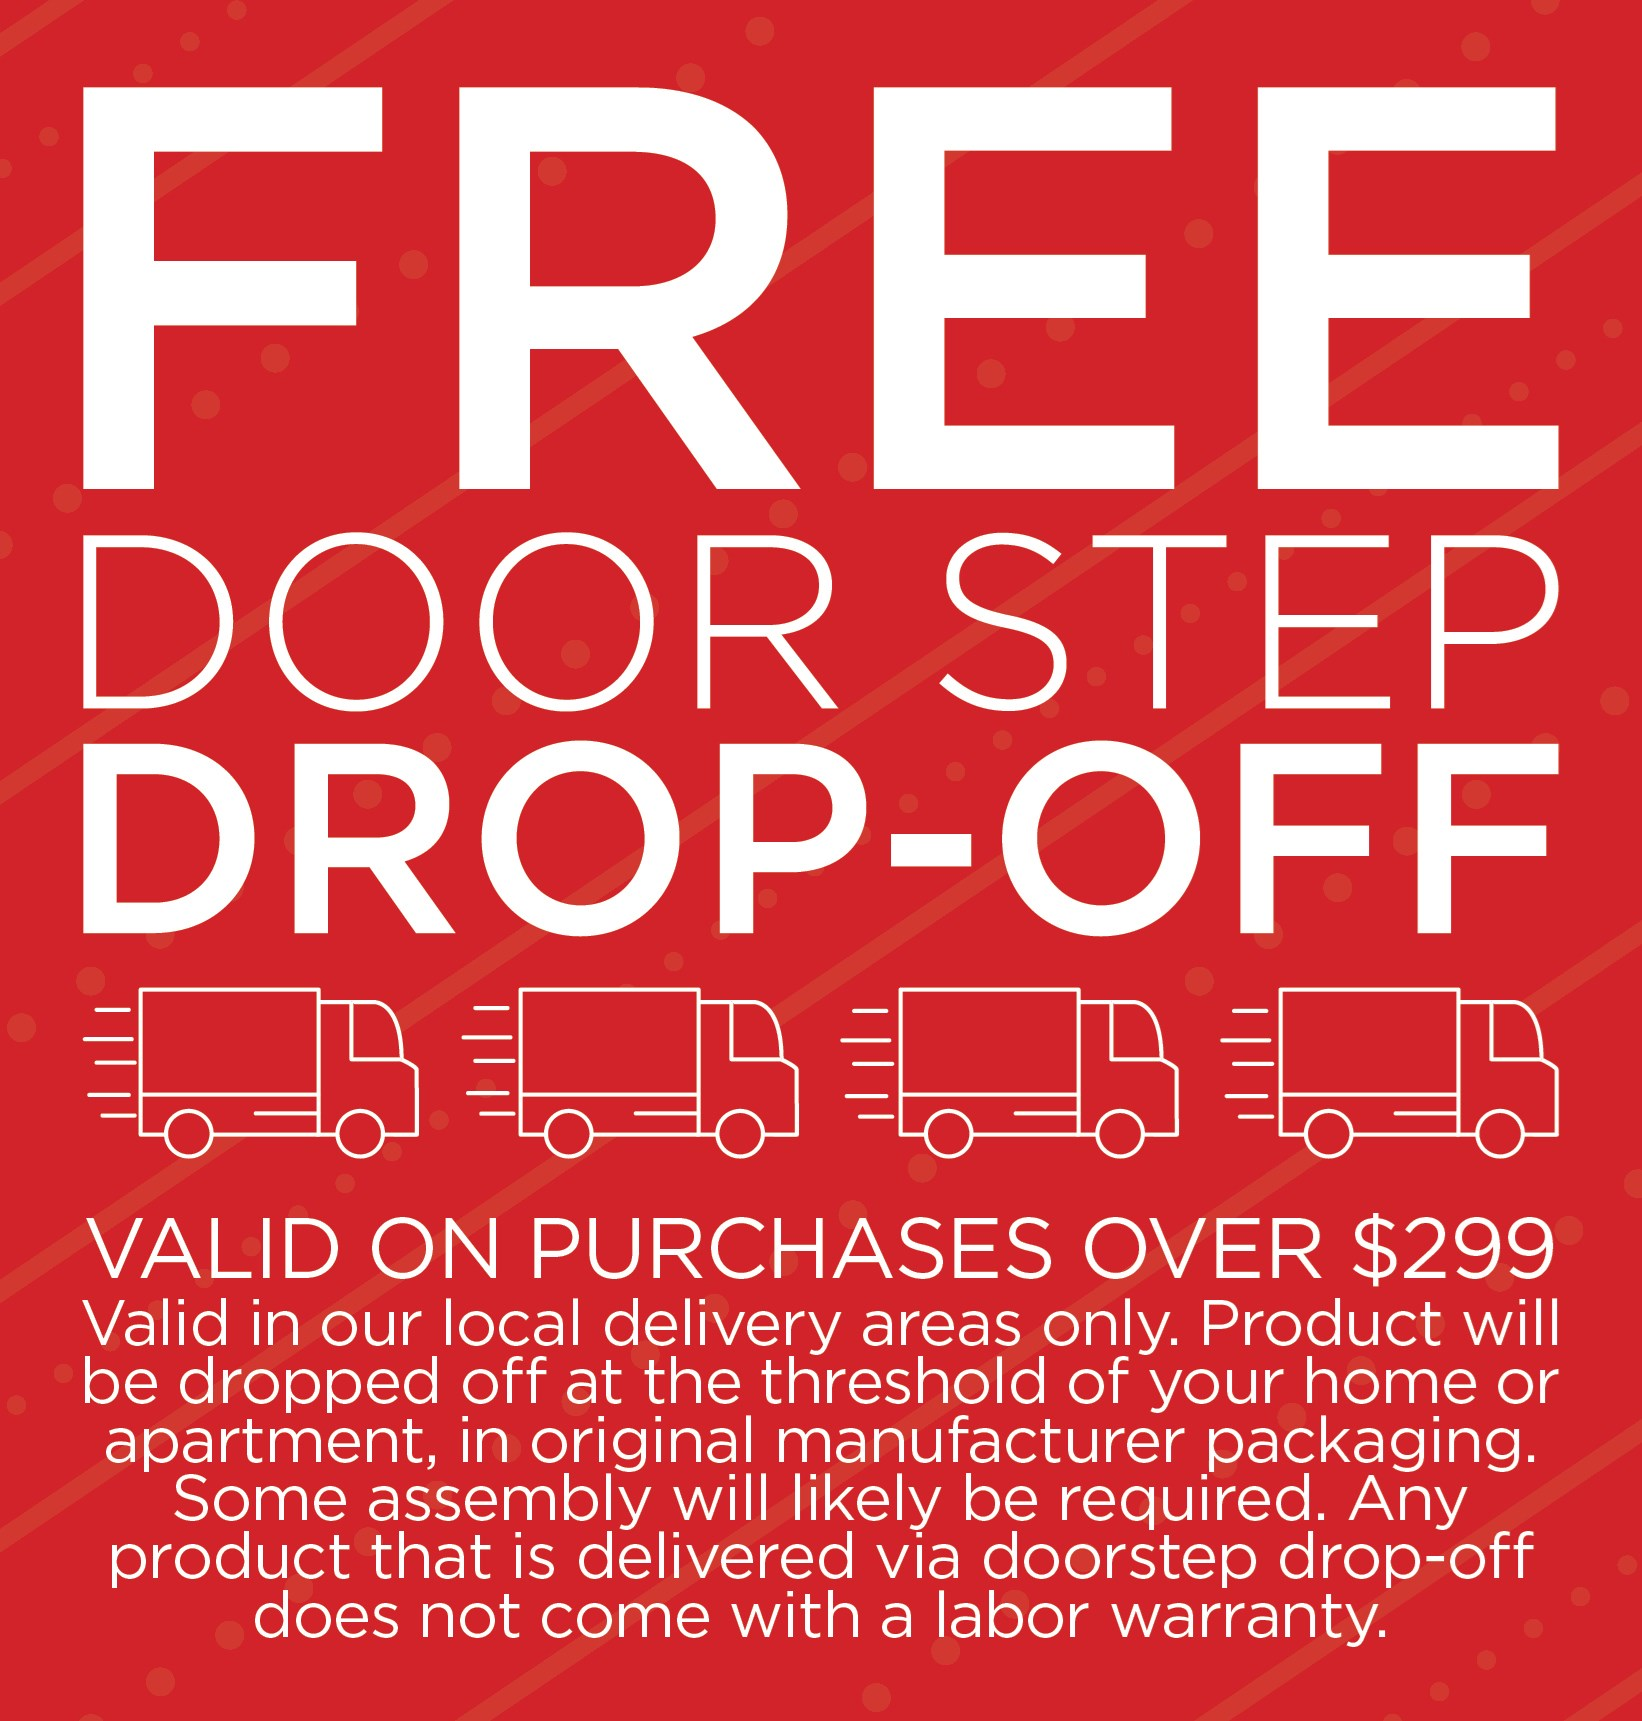 Furniture & ApplianceMart Free Doorstep In-Carton Drop Off